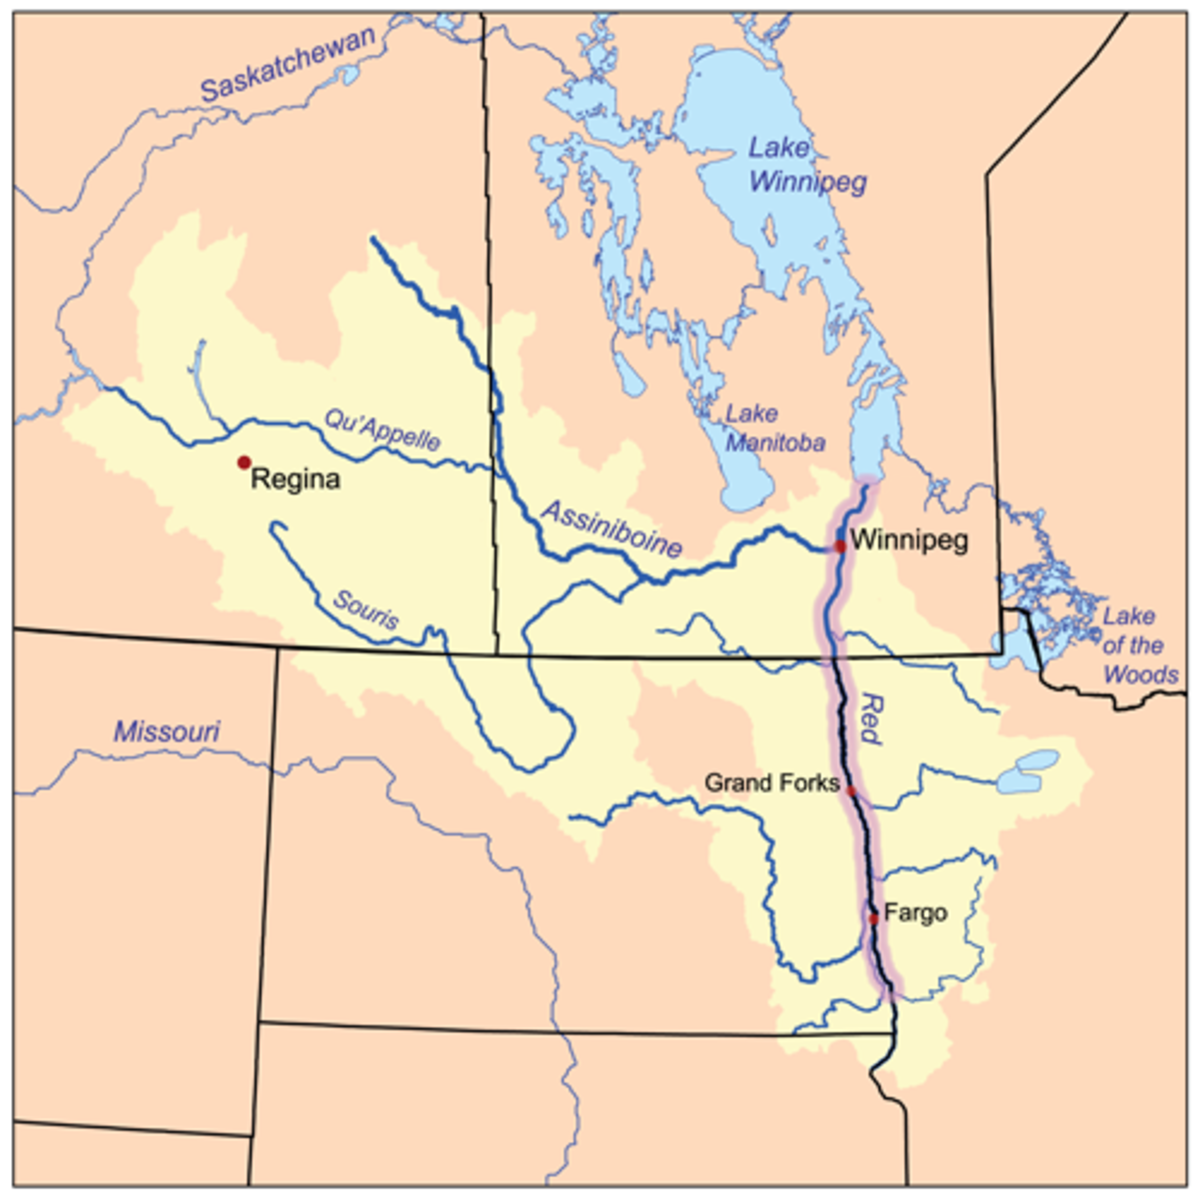 The Red River drainage